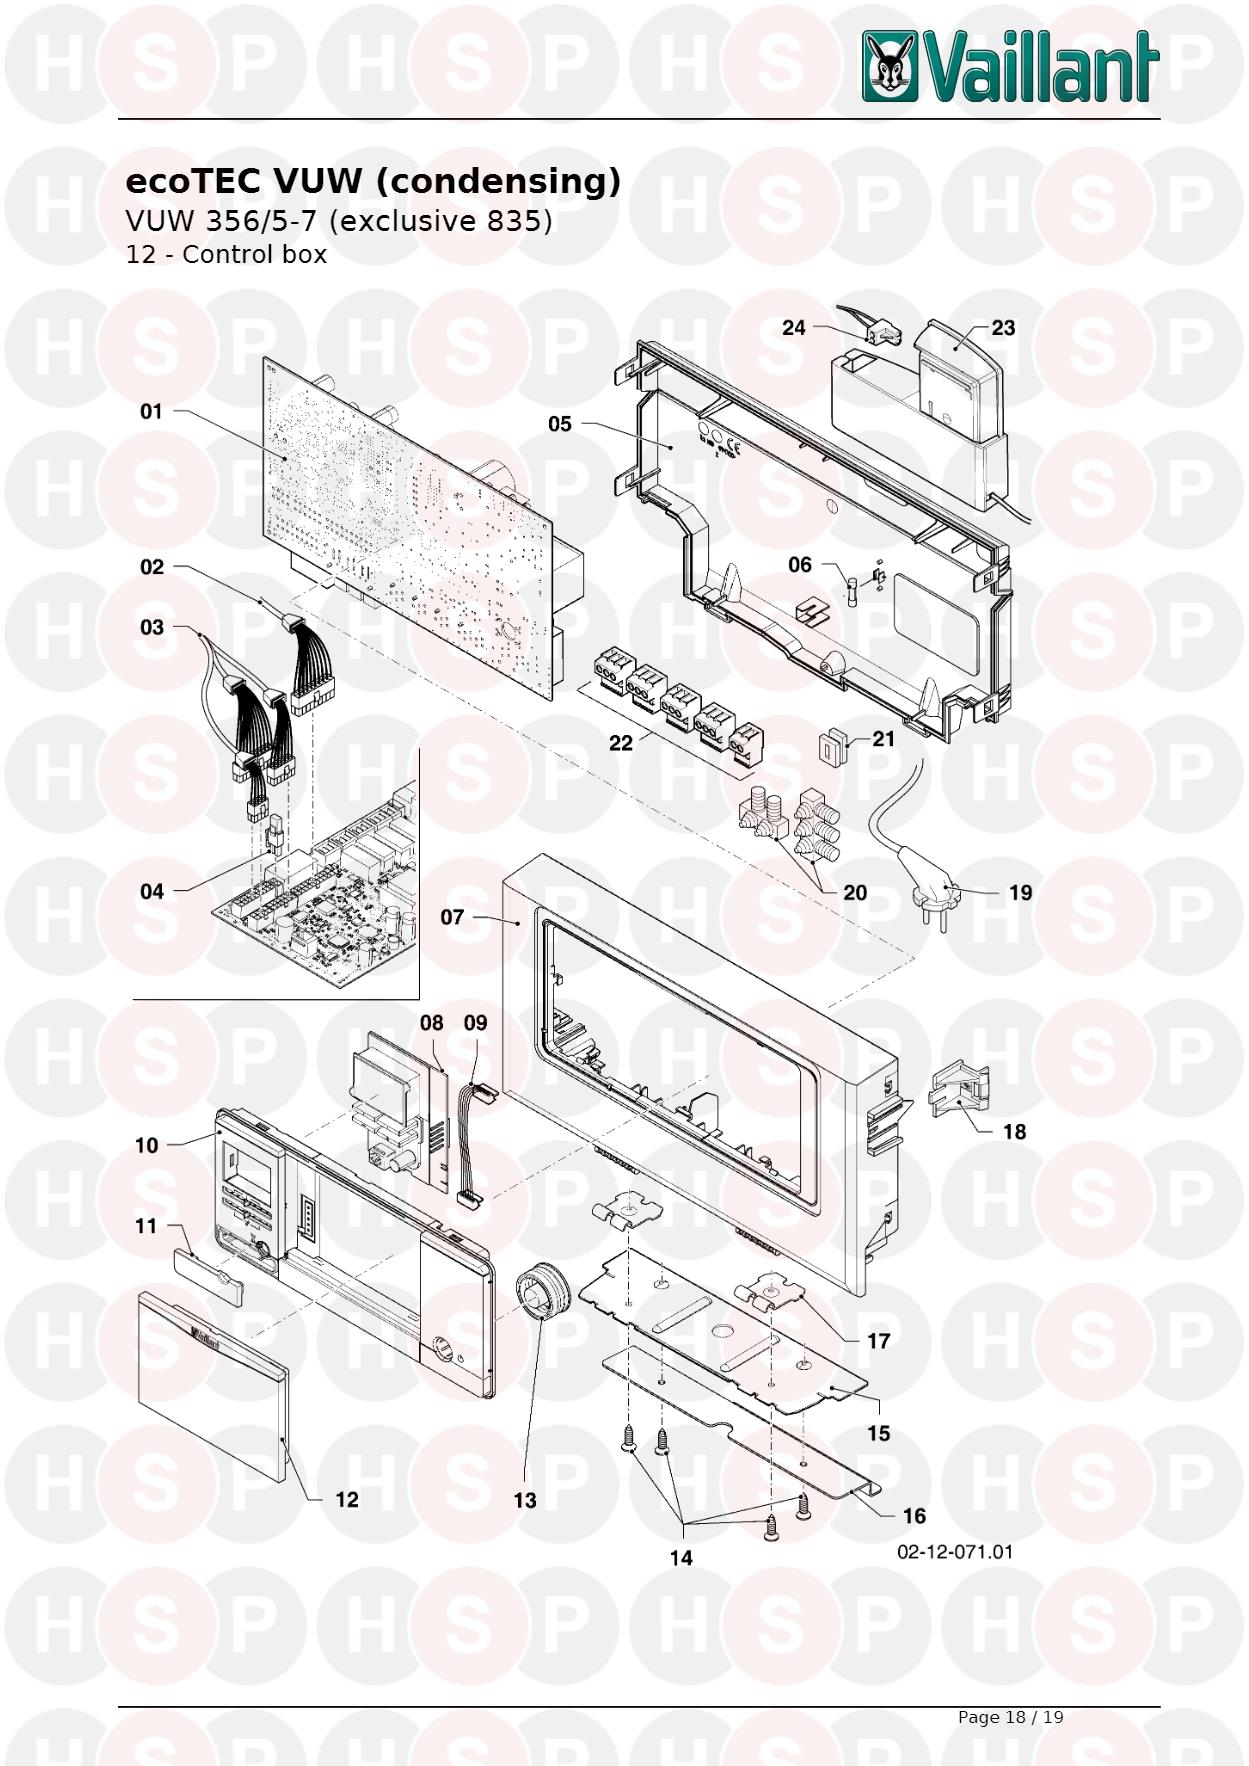 Vaillant ecotec exclusive 835 vuw 3565 7 12 control box diagram 12 control box diagram for vaillant ecotec exclusive 835 vuw 3565 7 cheapraybanclubmaster Image collections